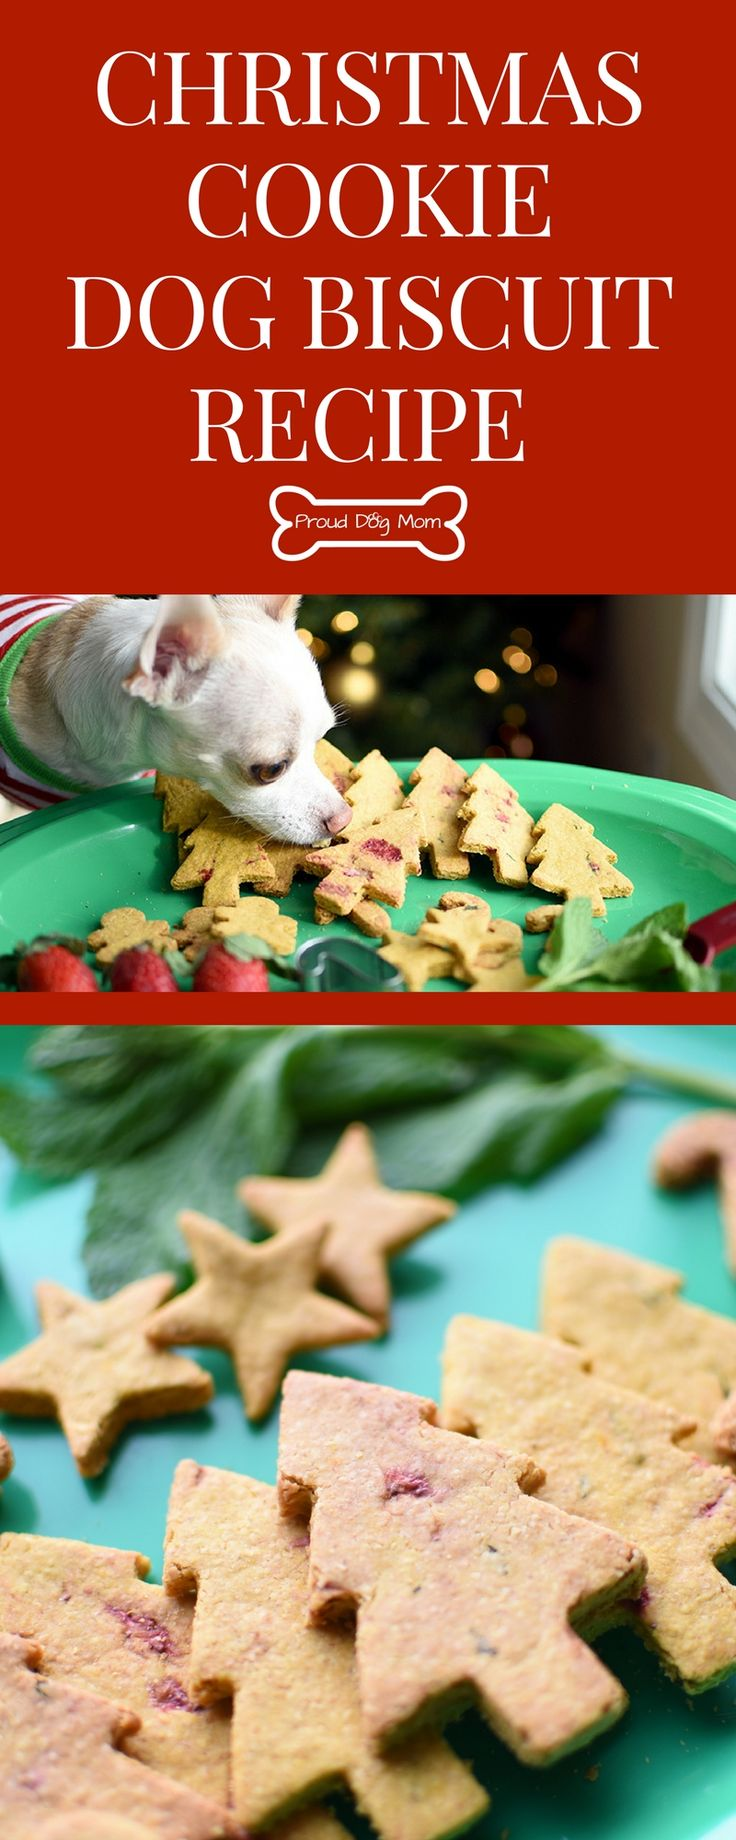 Christmas Cookie Dog Biscuit Recipe To Spoil Your Pups This Holiday | Gluten-Free Dog Biscuit Recipe | Dog Treat Recipe | Healthy Dog Treat Recipe | Easy Recipe |